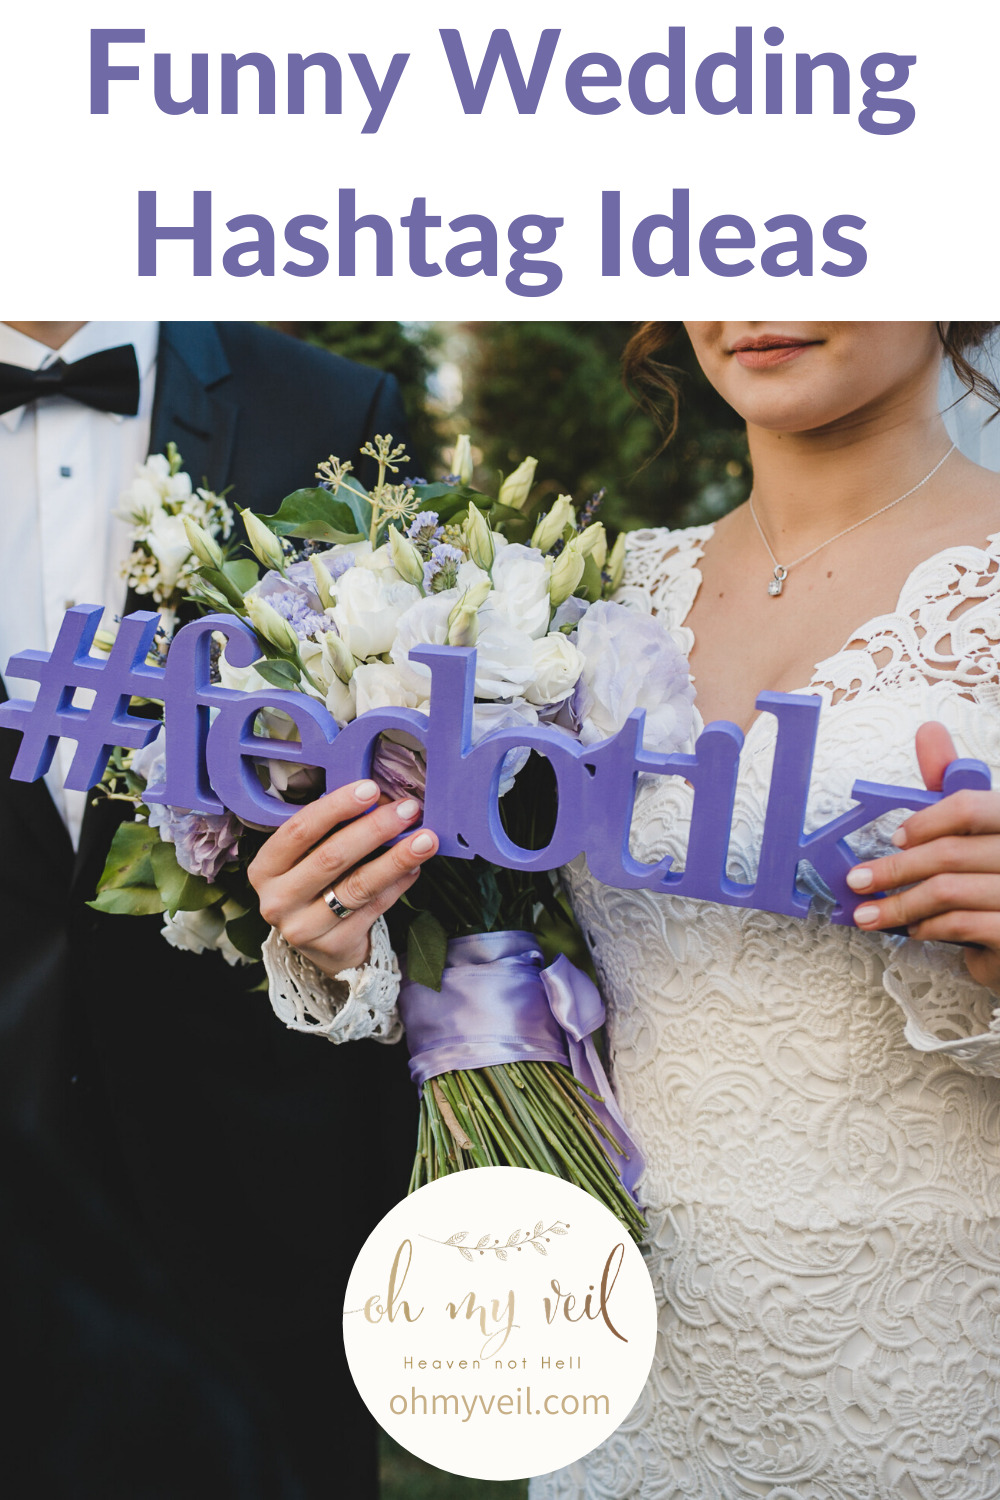 If you and your soon to be husband are the jokesters of the group, why not make your wedding hashtag a funny one? Check out these awesome ideas for your wedding hashtag! #weddinghashtag #weddinghashtagideascreative #weddinghashtagideasfunny #weddinghastagideasgenerator #weddinghashtageideasunique #weddinghastagideasnames #ohmyveilblog